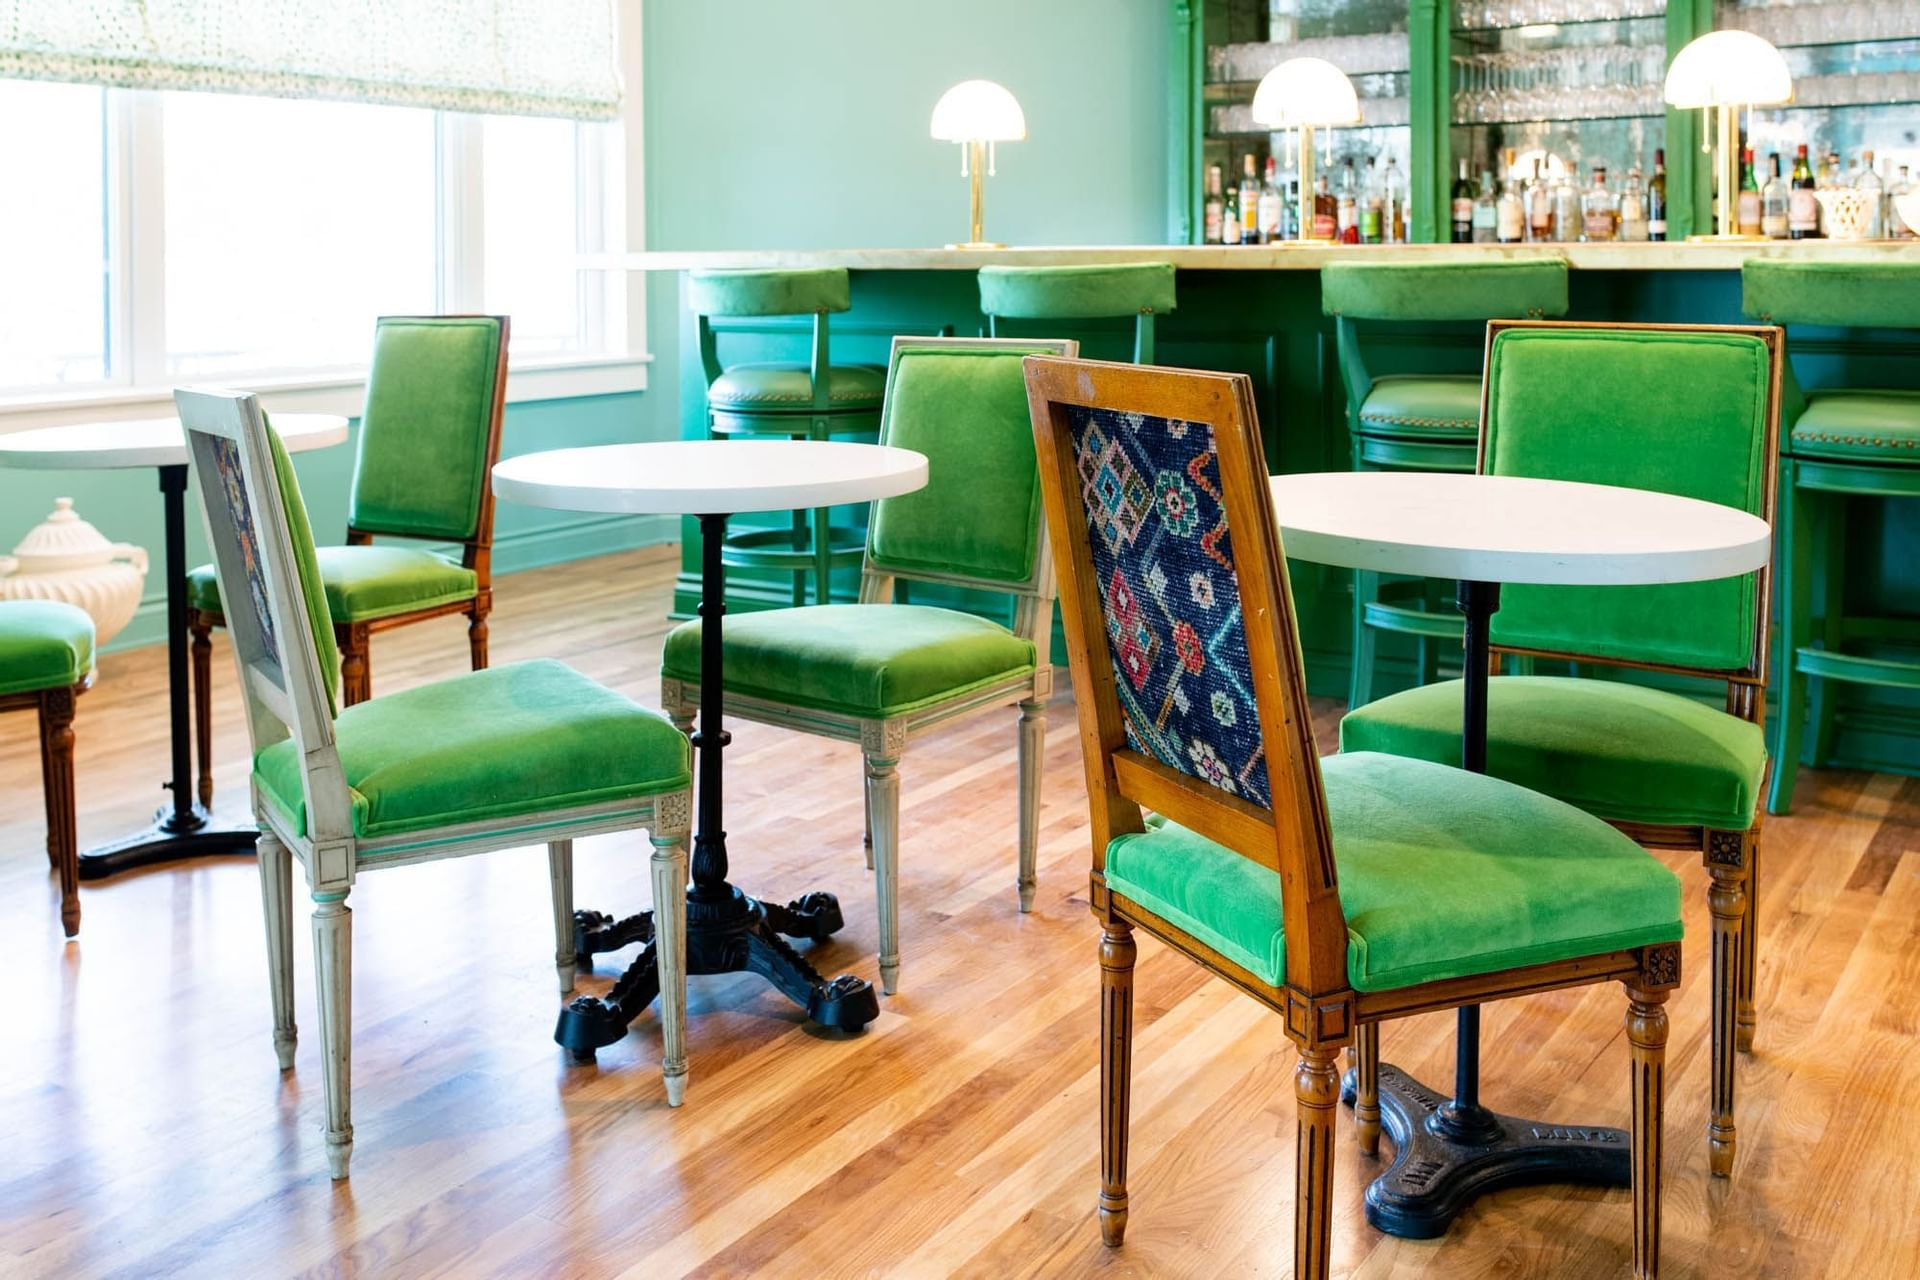 green chairs at bar in blue room